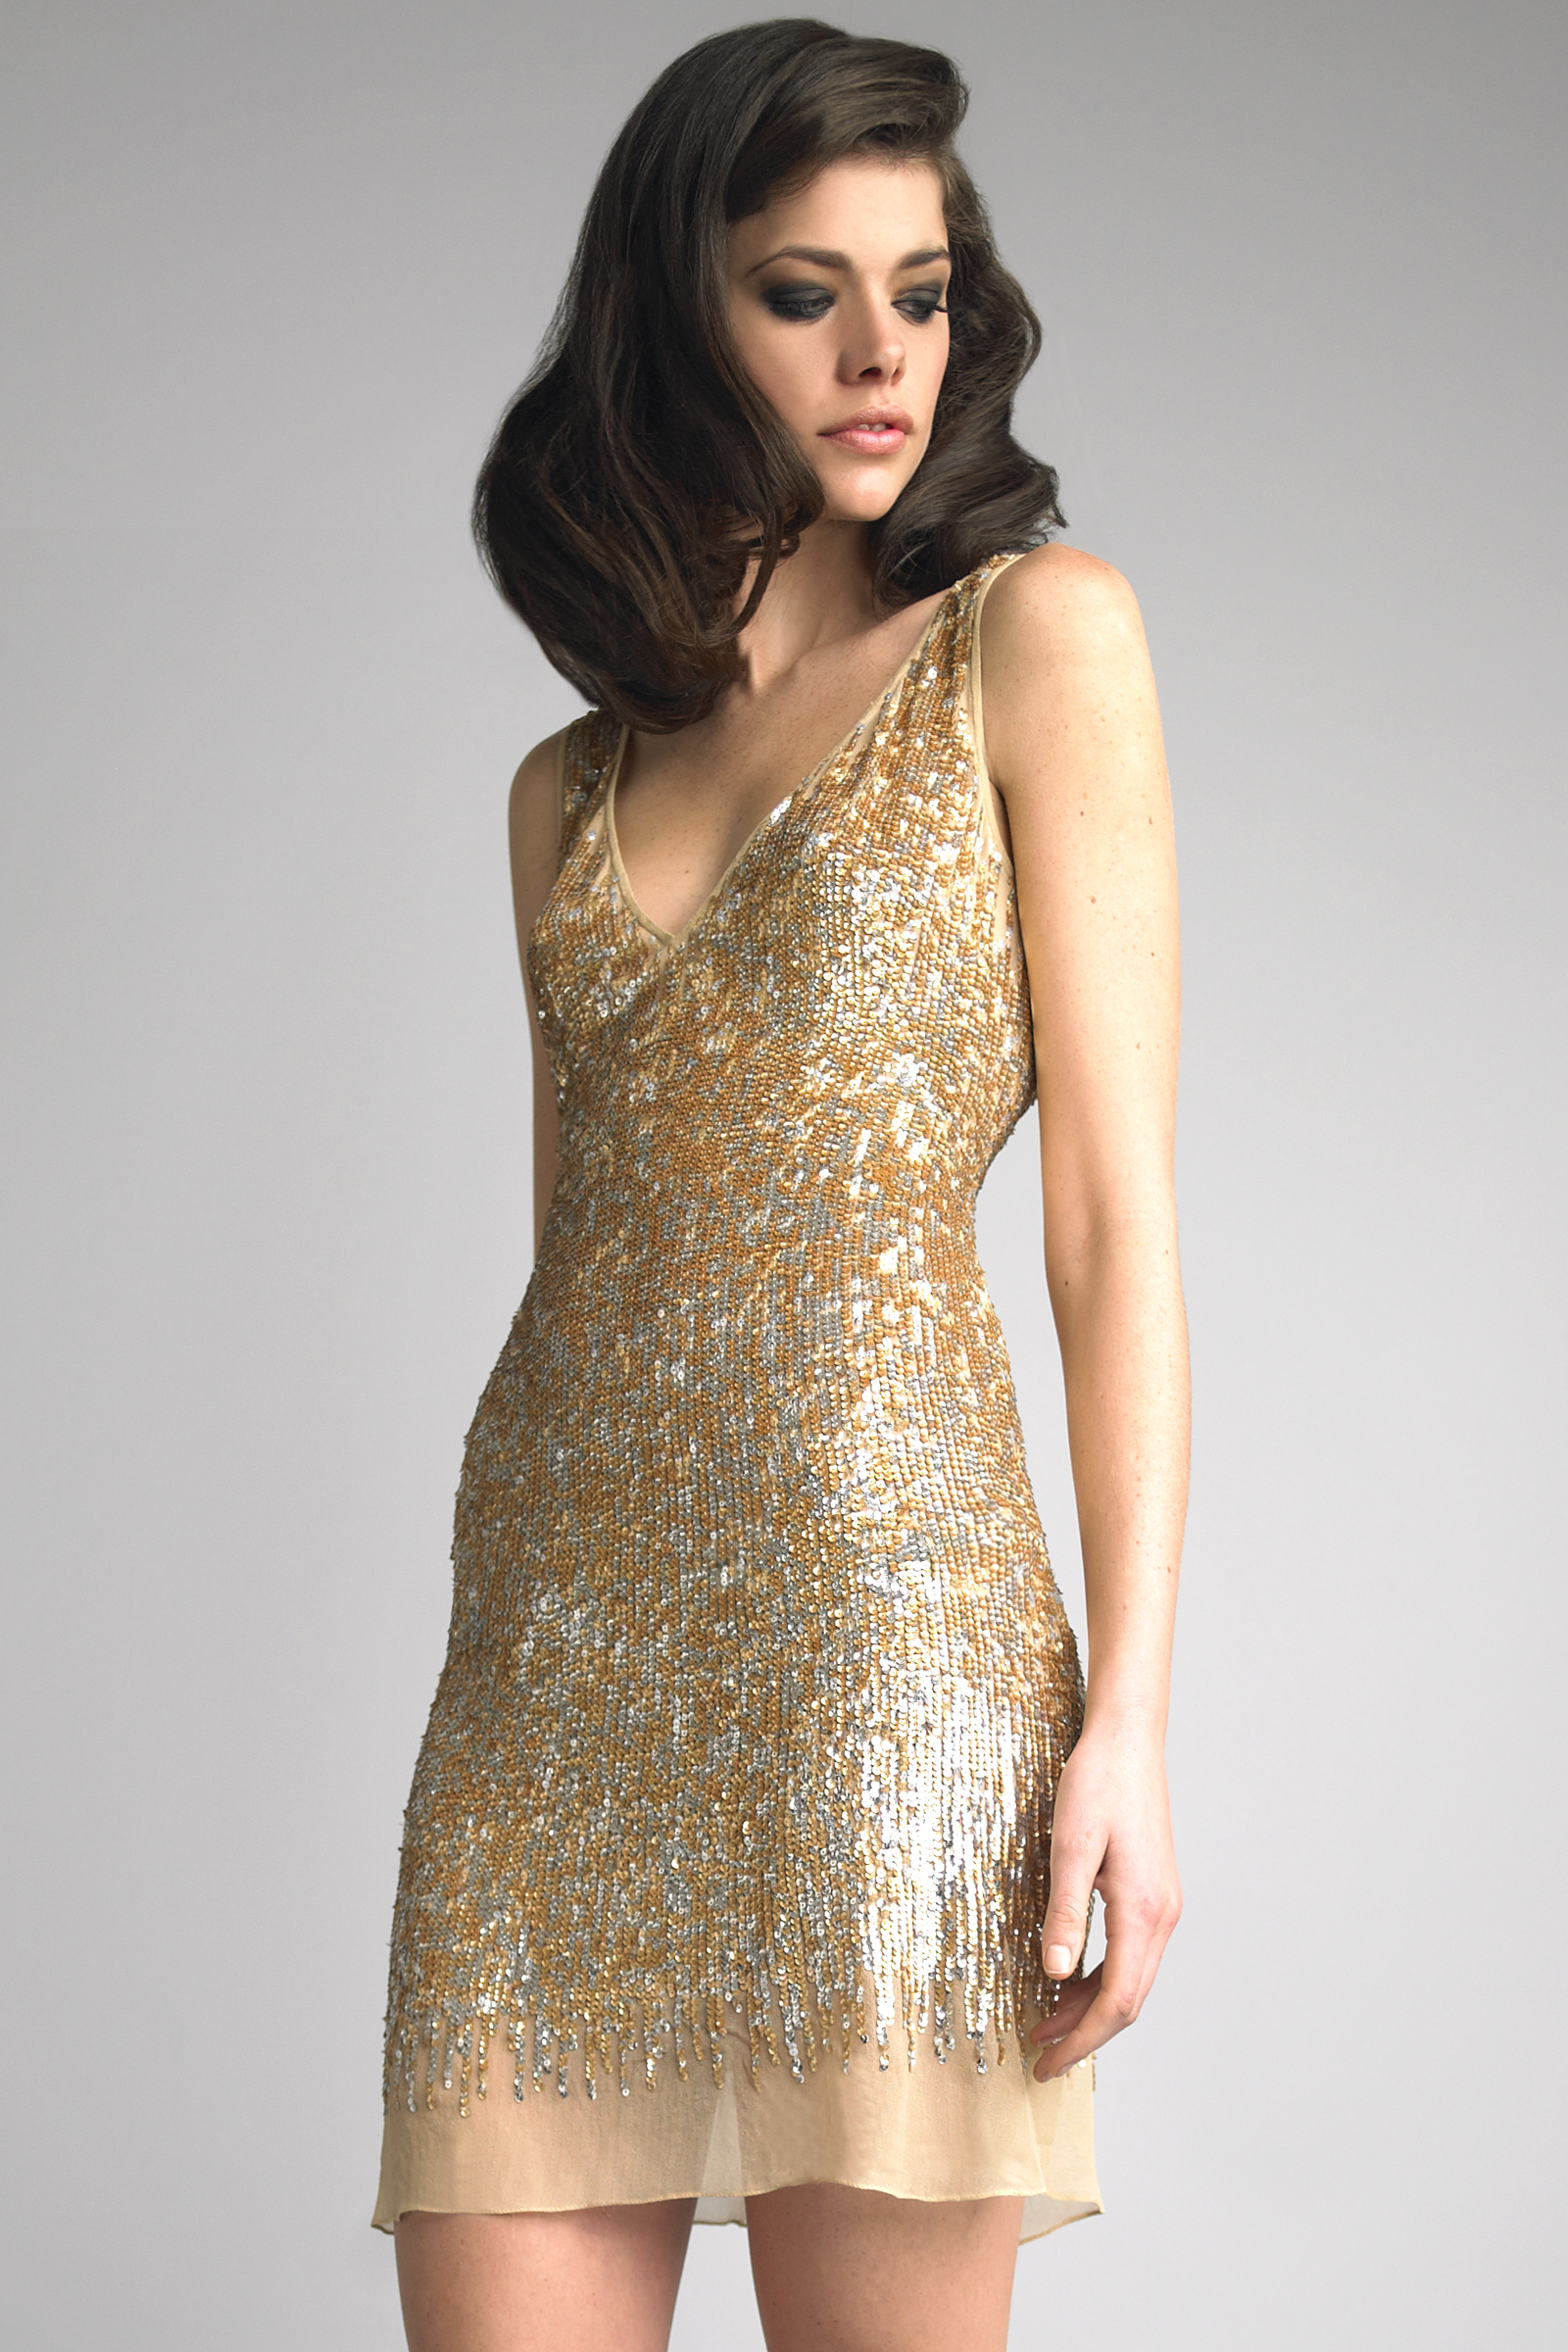 Gold Cocktail Dress - Dressed Up Girl